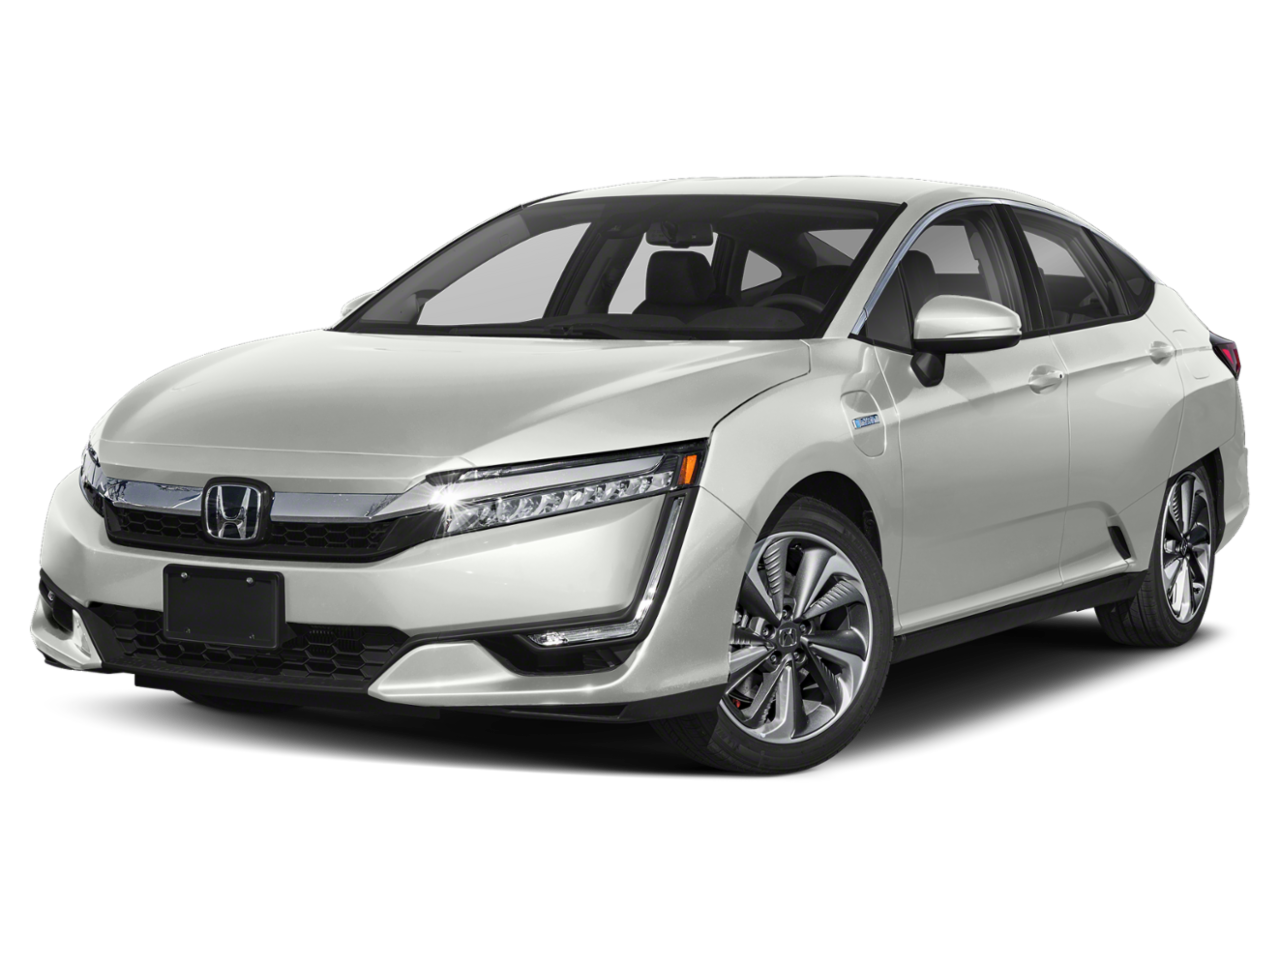 Honda 2021 Clarity Plug-In Hybrid Sedan